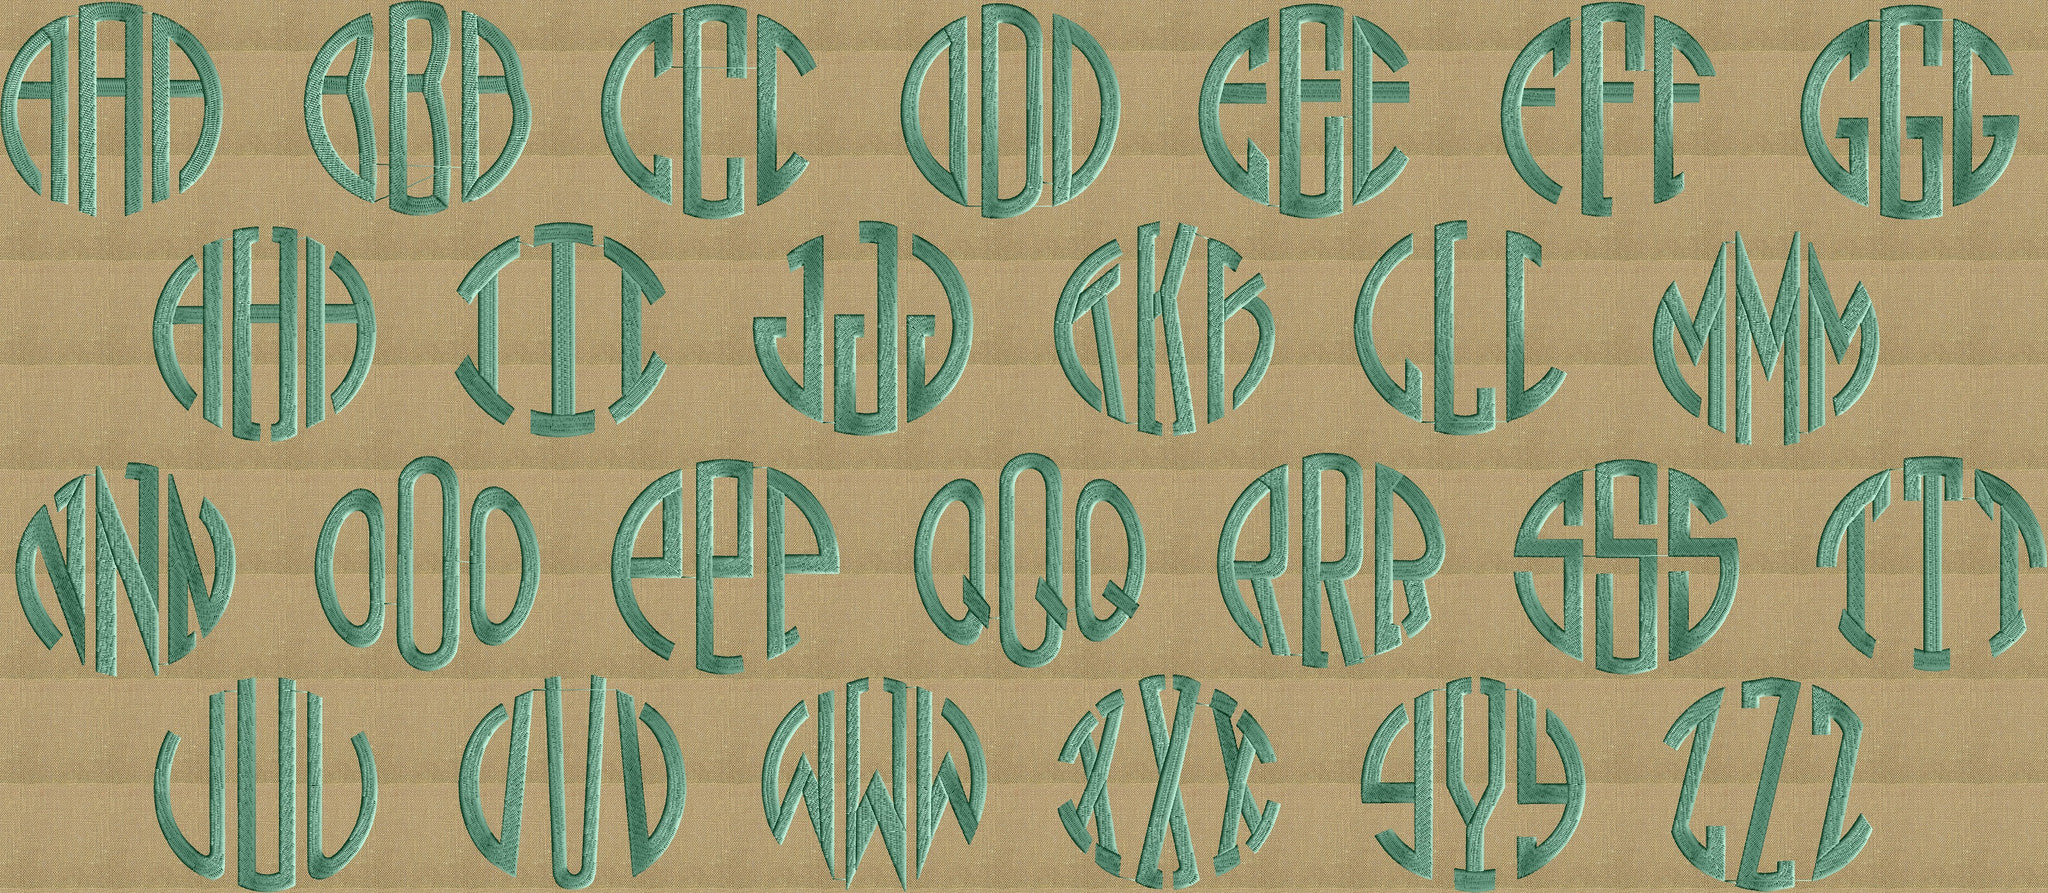 Round Block Monogram Font Embroidery File - 26 Letters -2.75 inches tall EMBROIDERY DESIGN FILE Instant download Dst Hus Jef Pes Exp Vp3 format